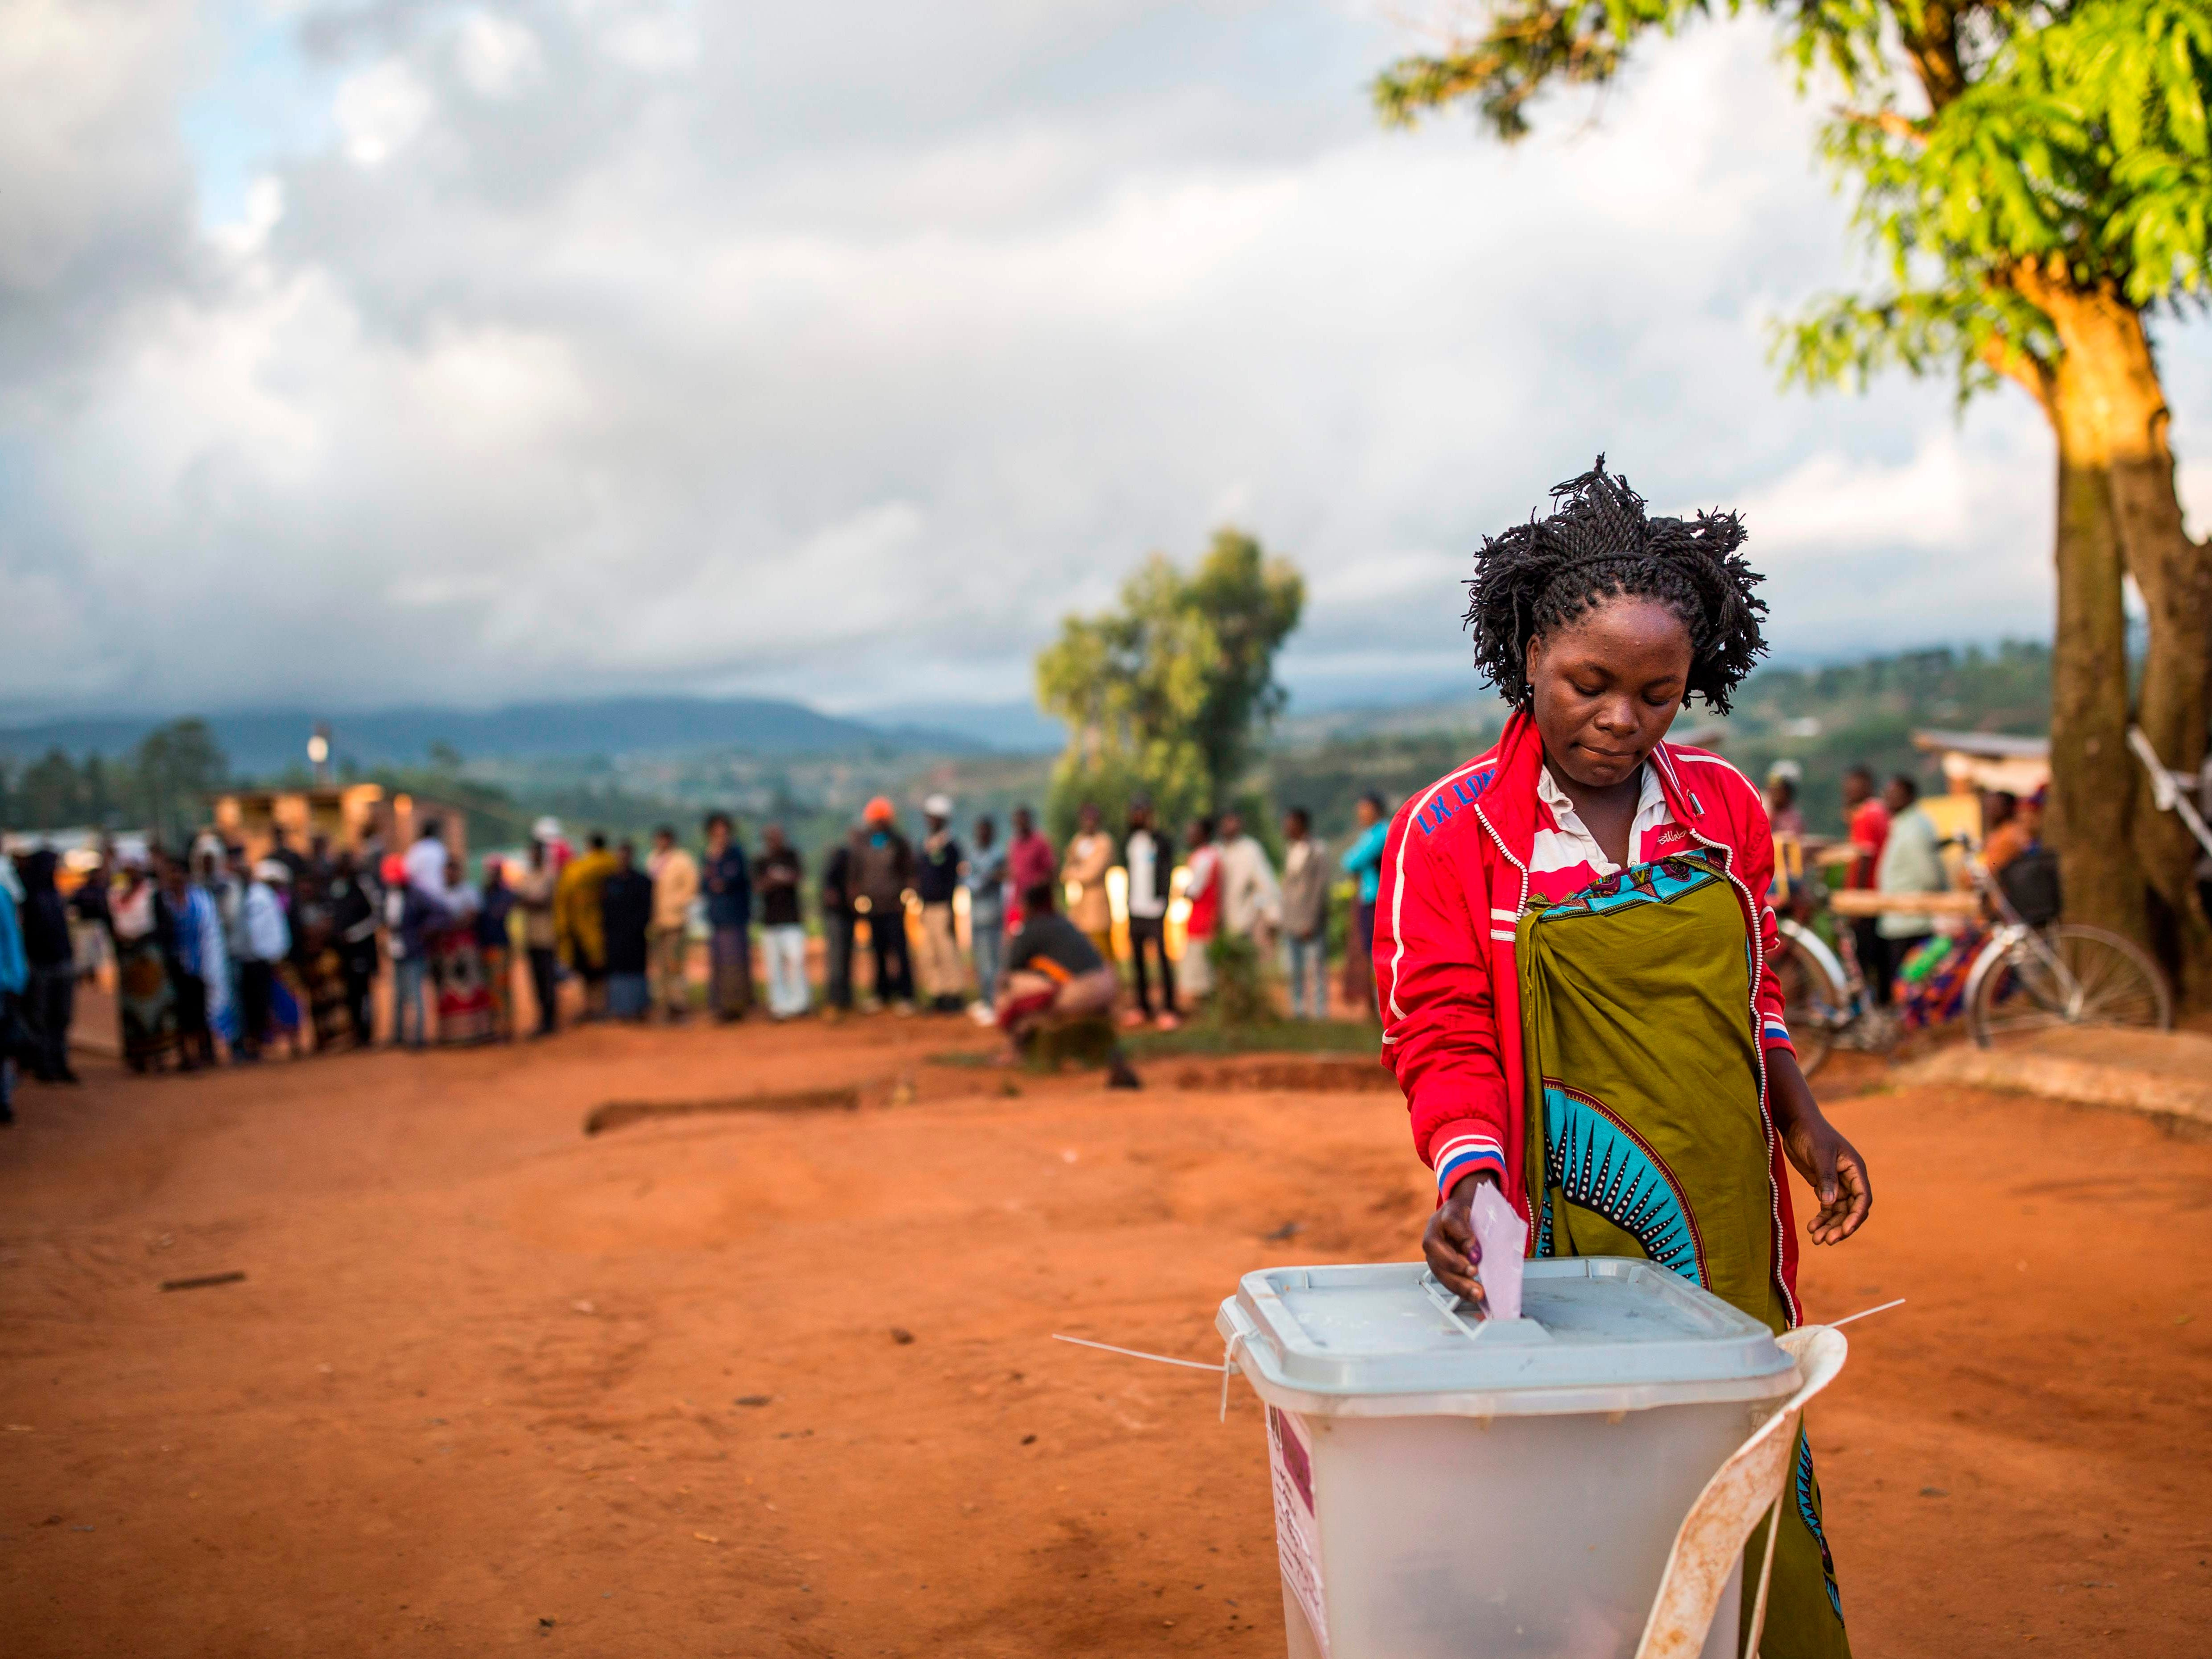 A woman casts her vote during general elections in Mzuzu, Malawi on May 21, 2019.  Malawi polls opened on May 21 after a closely-fought election campaign, with President Peter Mutharika battling to hold off two serious rivals in a race that has focused on corruption allegations and economic development.